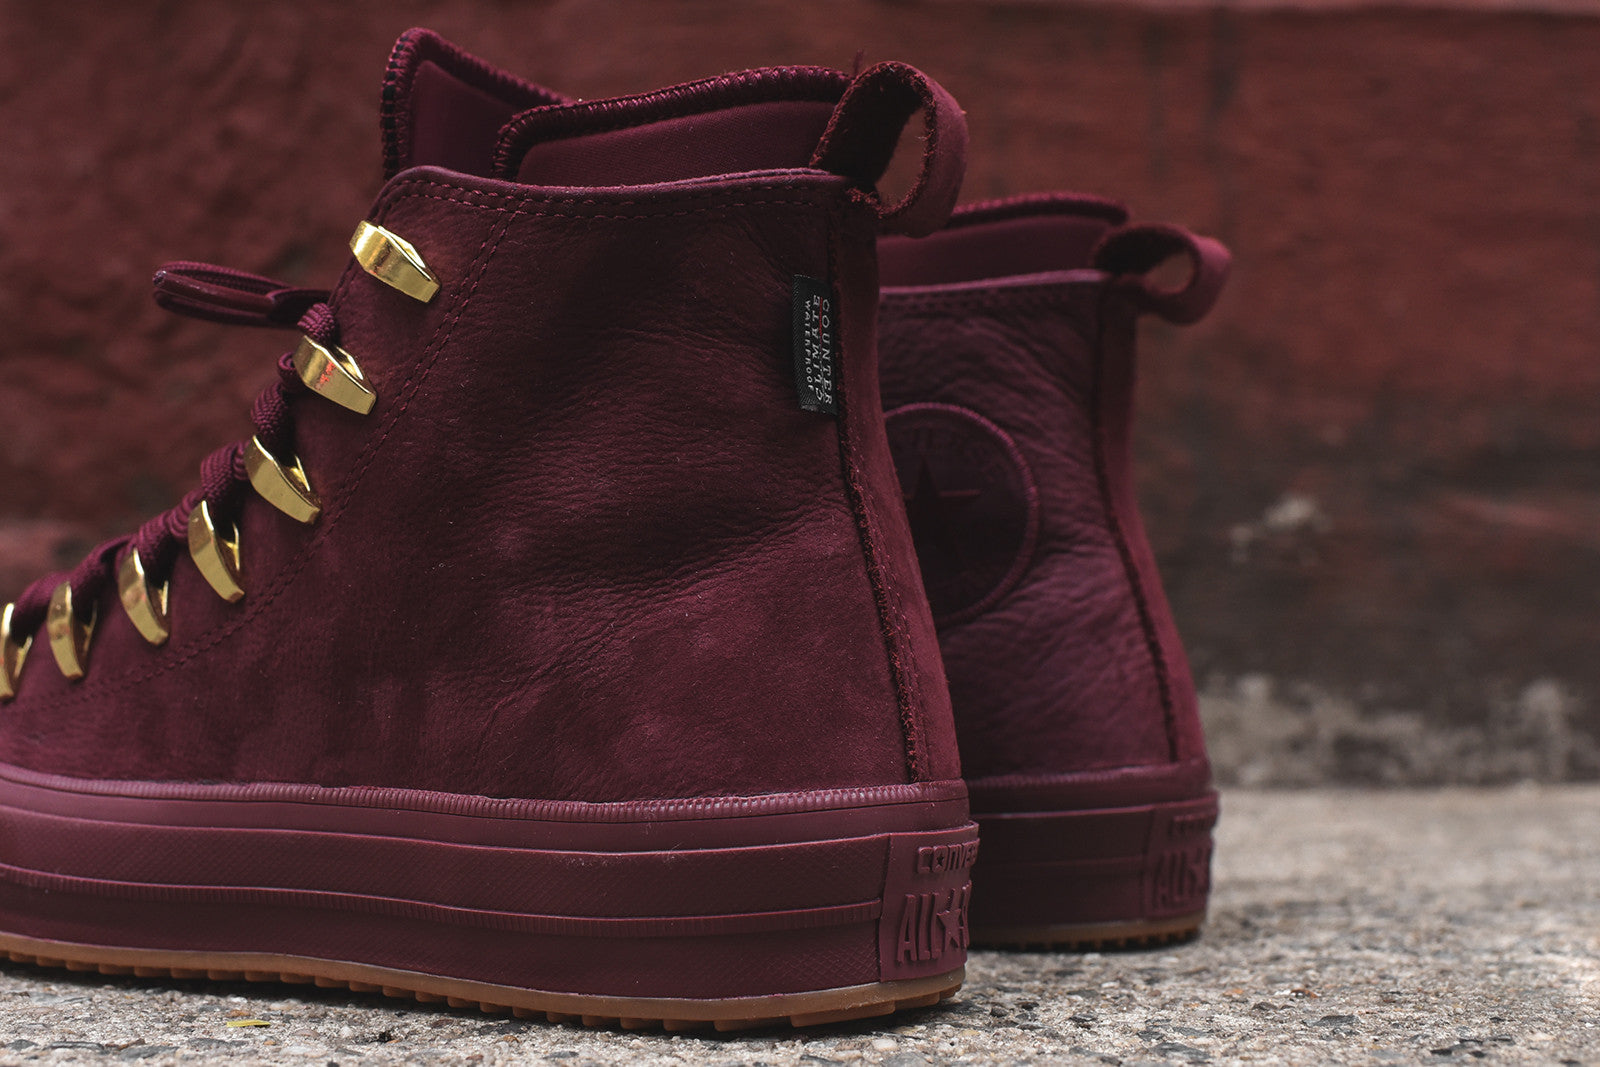 Converse WMNS Chuck Taylor All Star II Boot - Burgundy